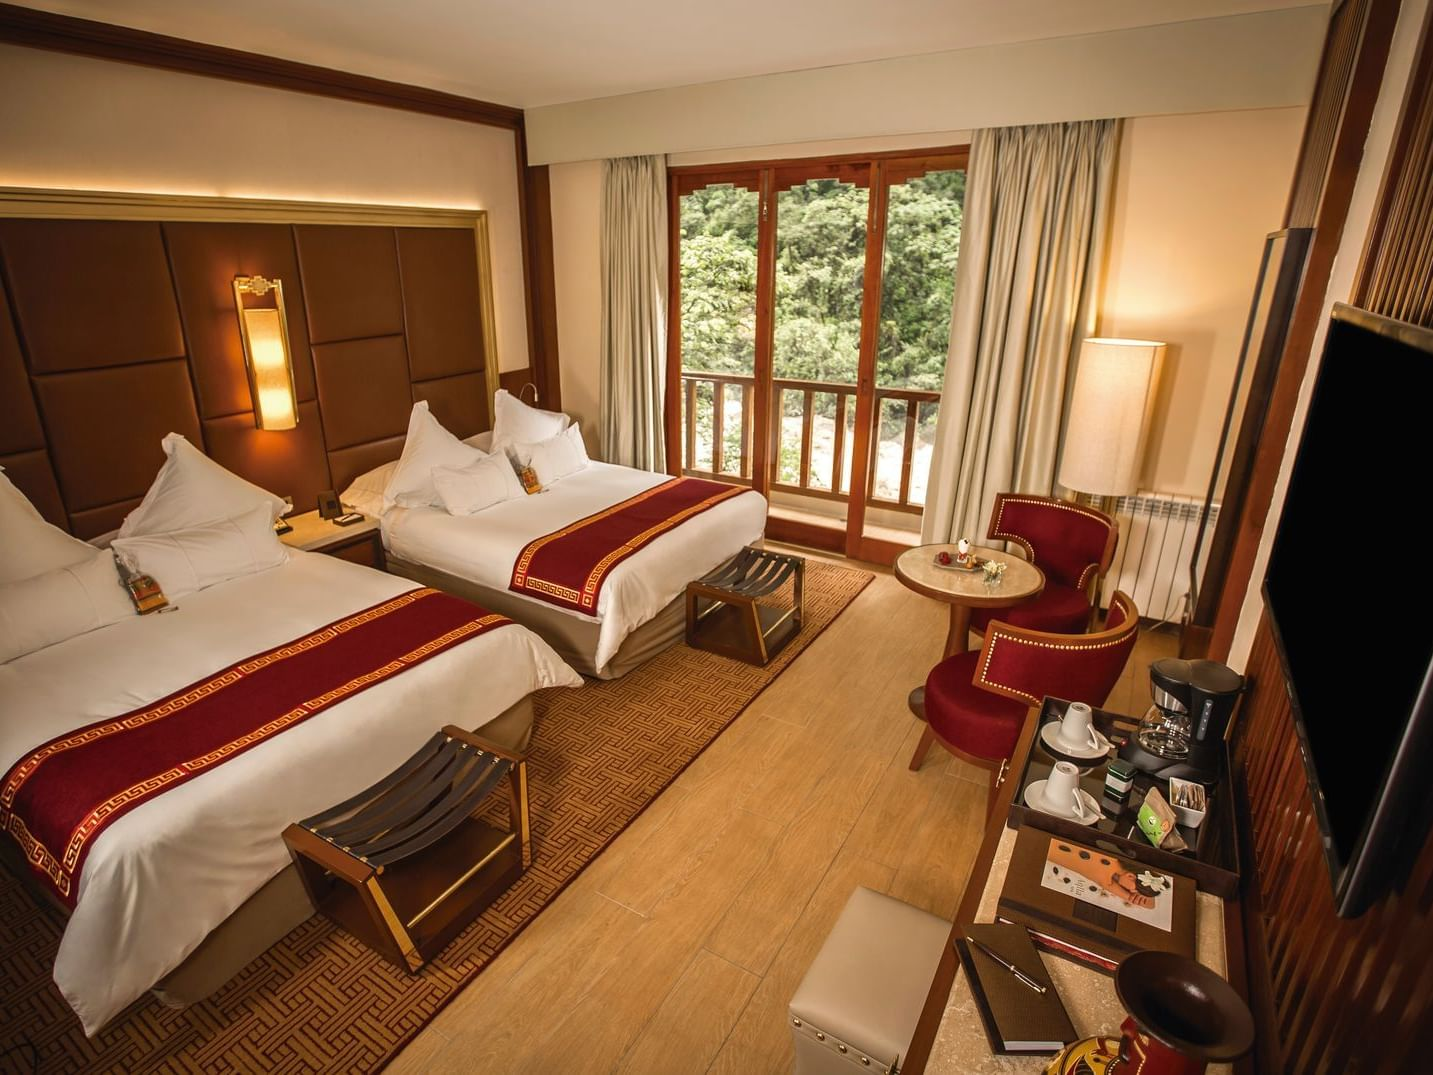 Sumaq Deluxe with river viewwith double beds at Hotel Sumaq